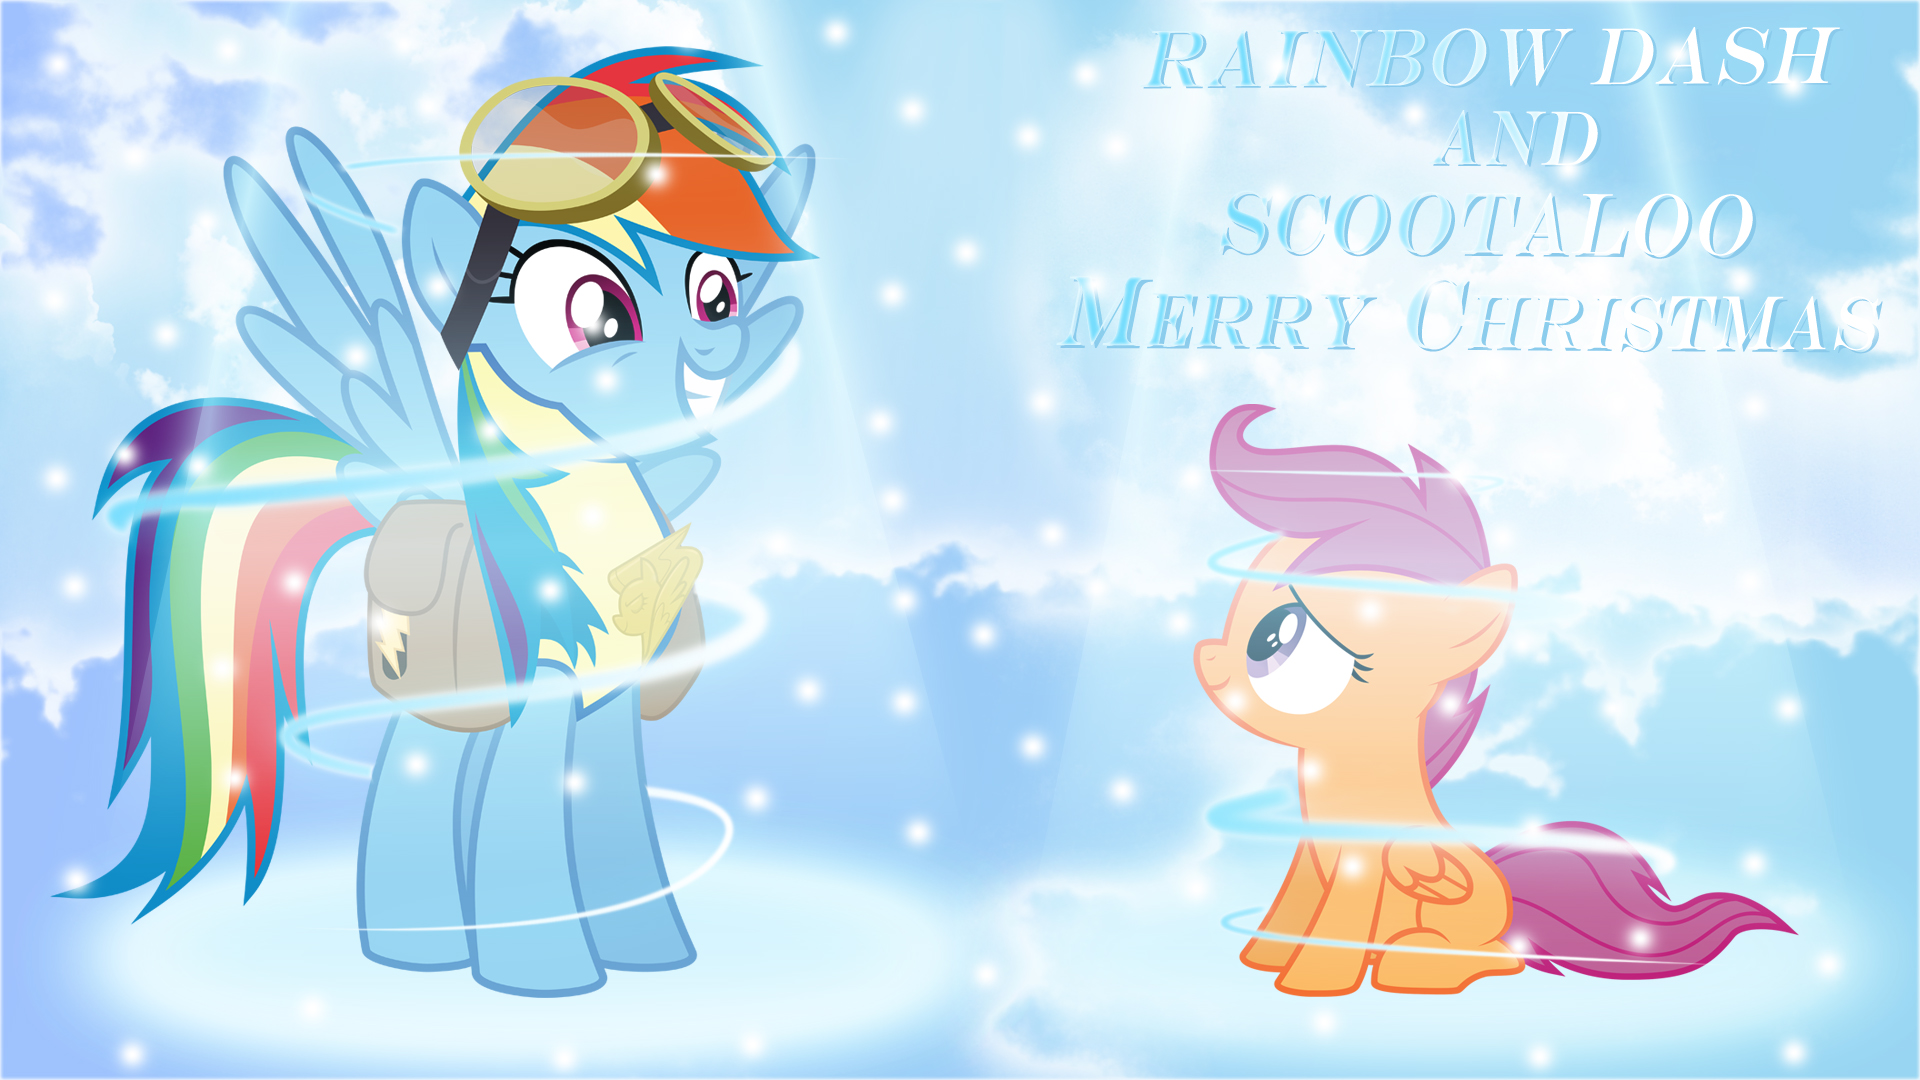 Rainbowdash And Scootaloo Merry Christmas By Kysss90 On